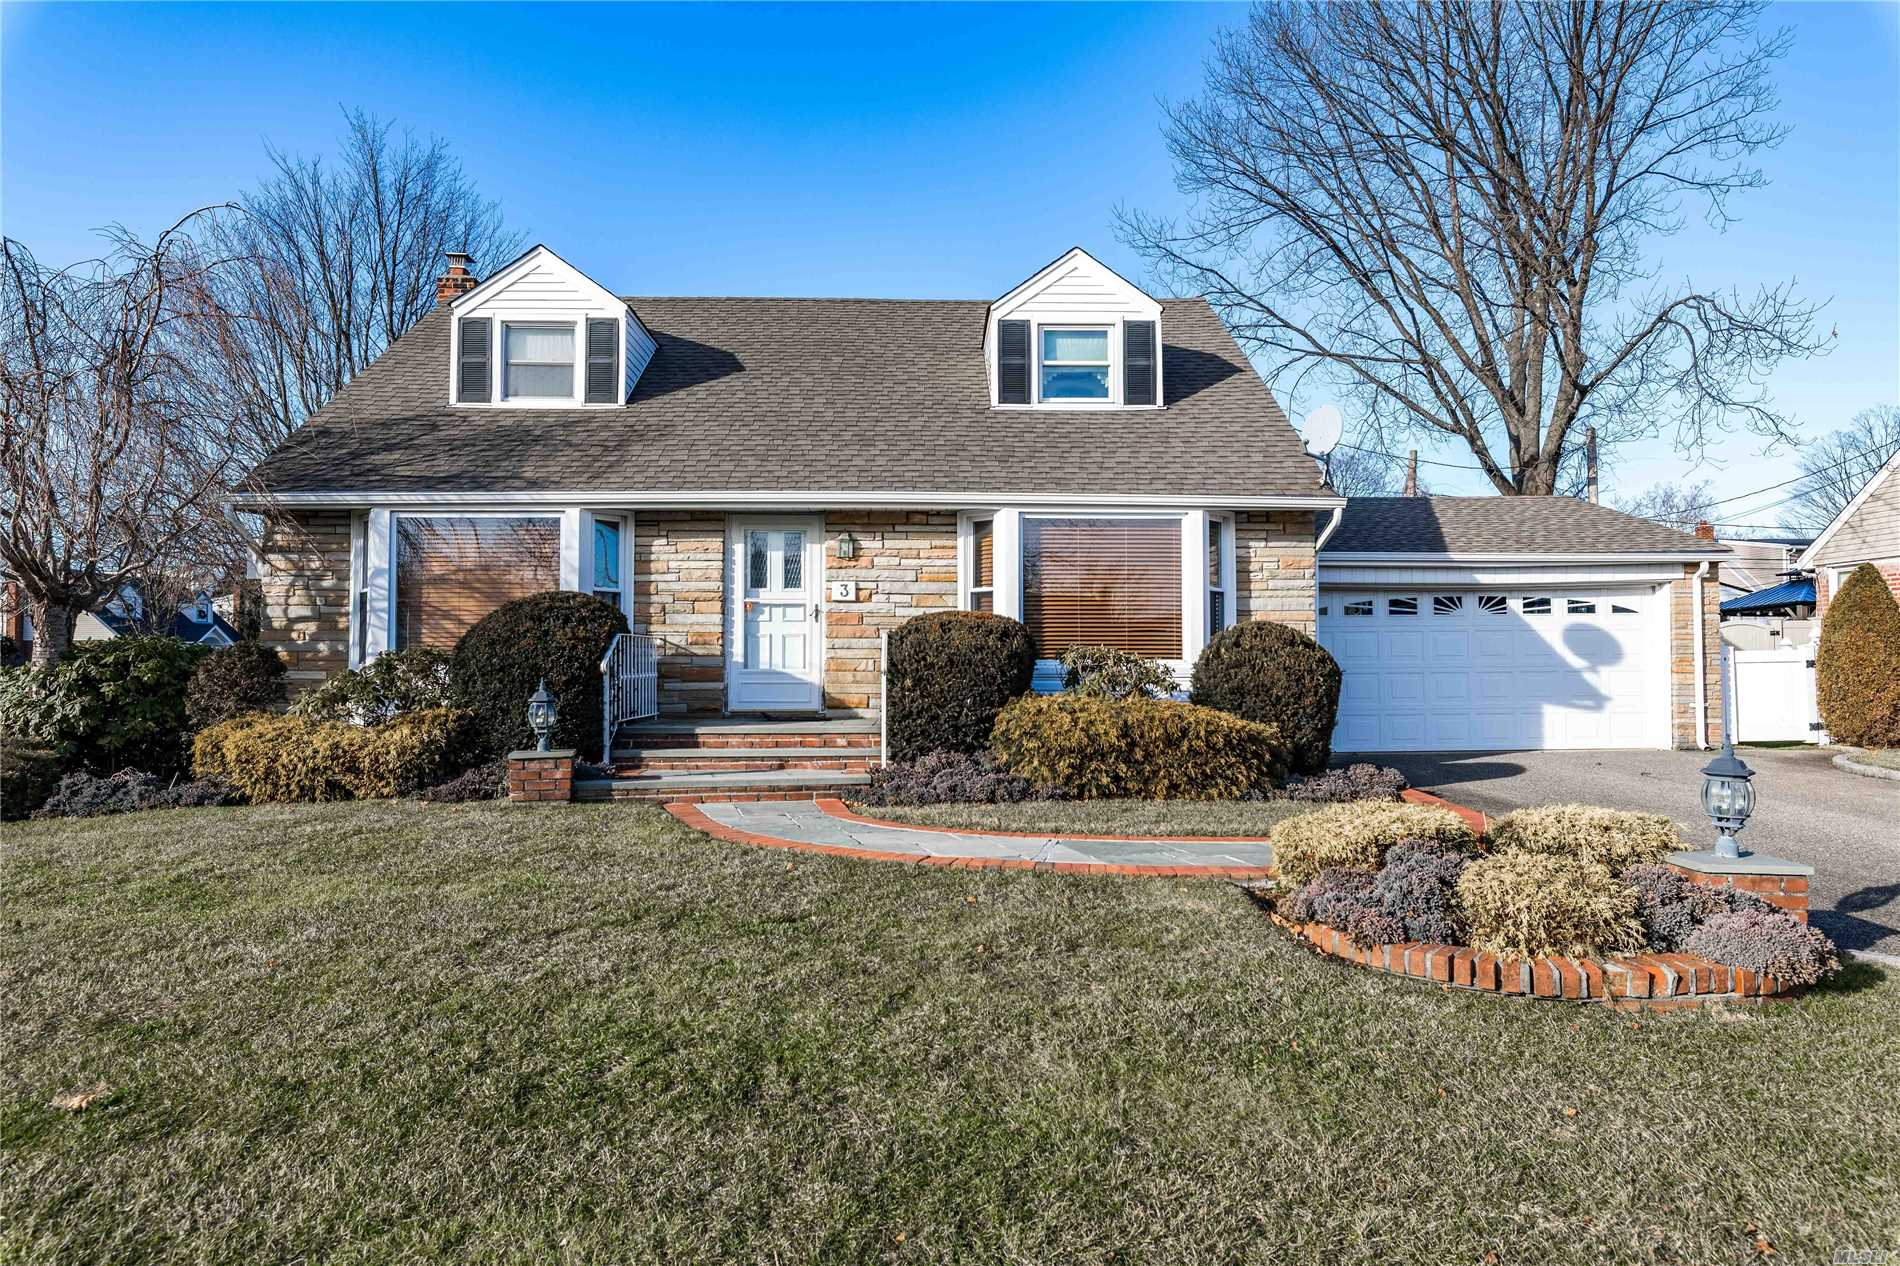 Lovely Expanded Cape In Carle Place Schools,  Features 5/6 Bedrooms, Eat-In-Kitchen, Formal Dining Rm, Living Rm, 2 Full Bath, Hardwood Floors Under Carpeting, Possible Mother Daughter W/Proper Permits,  Full Basement W/ Utility Rm,  2 Car Garage, Back Up House Generator, Inground Sprinklers, Close To All Major Highways !! A Must See